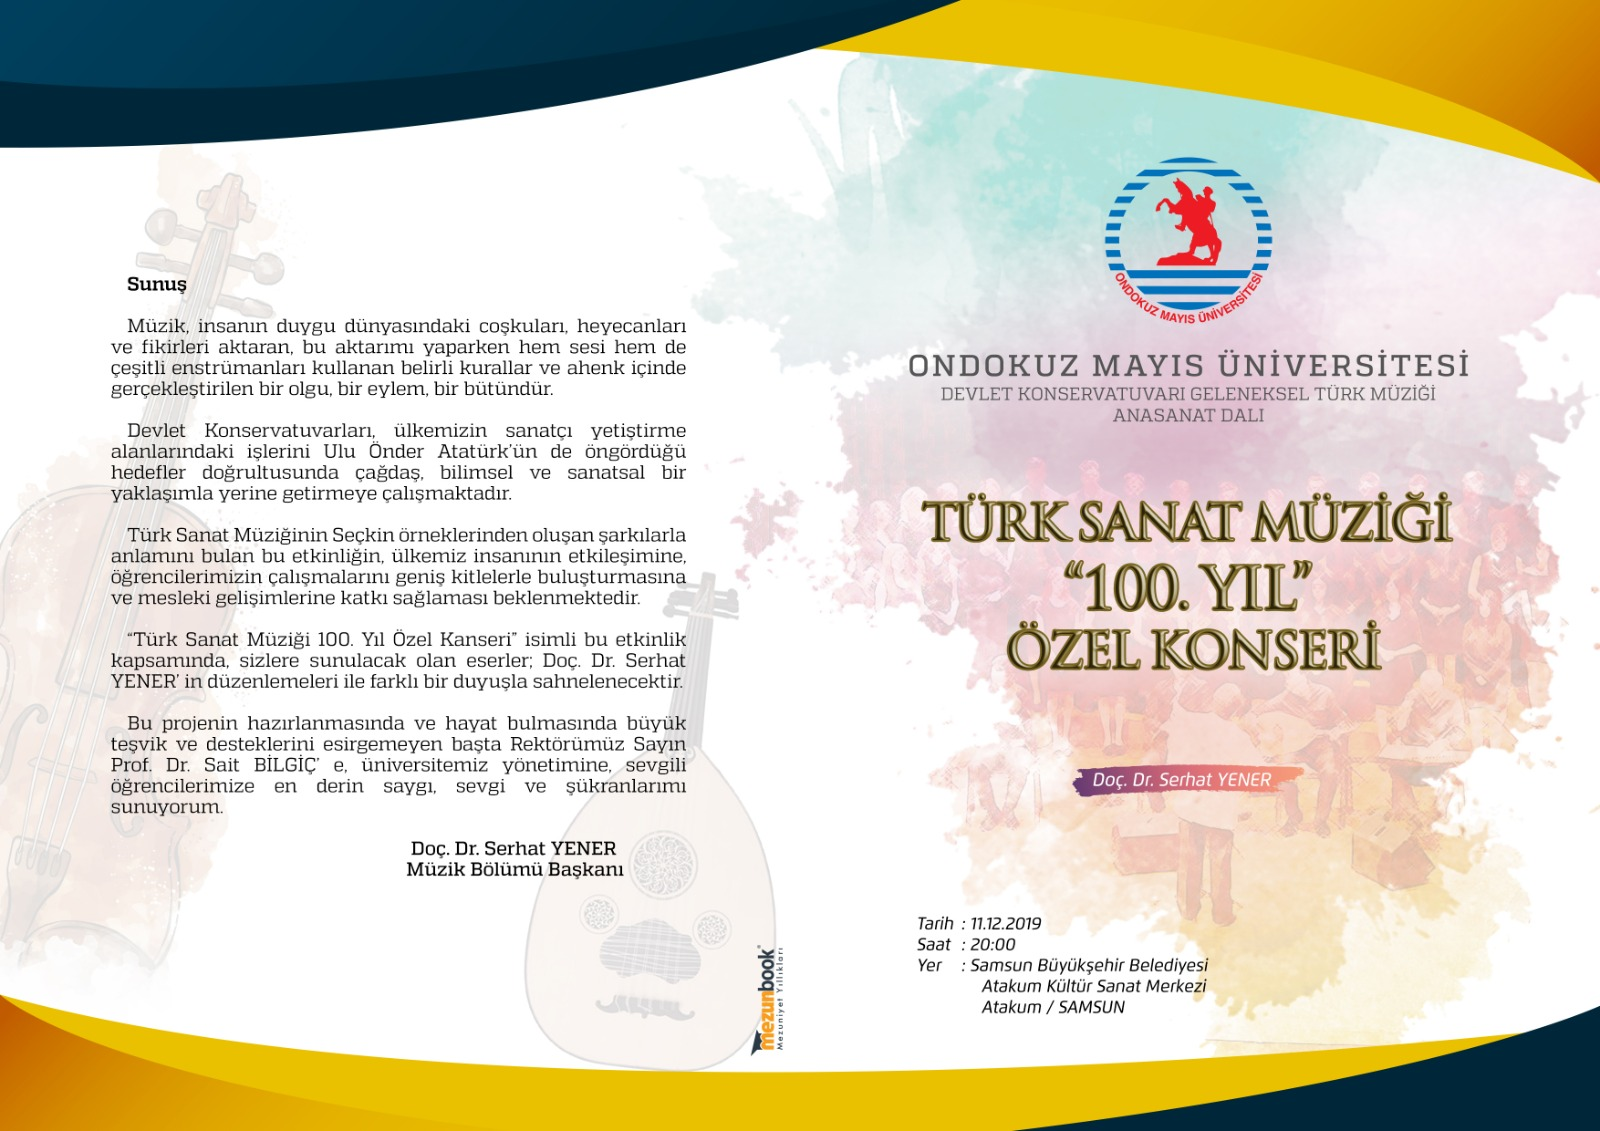 http://www.omu.edu.tr/sites/default/files/serhat_yener_100_yil_ozel_konseri.jpeg